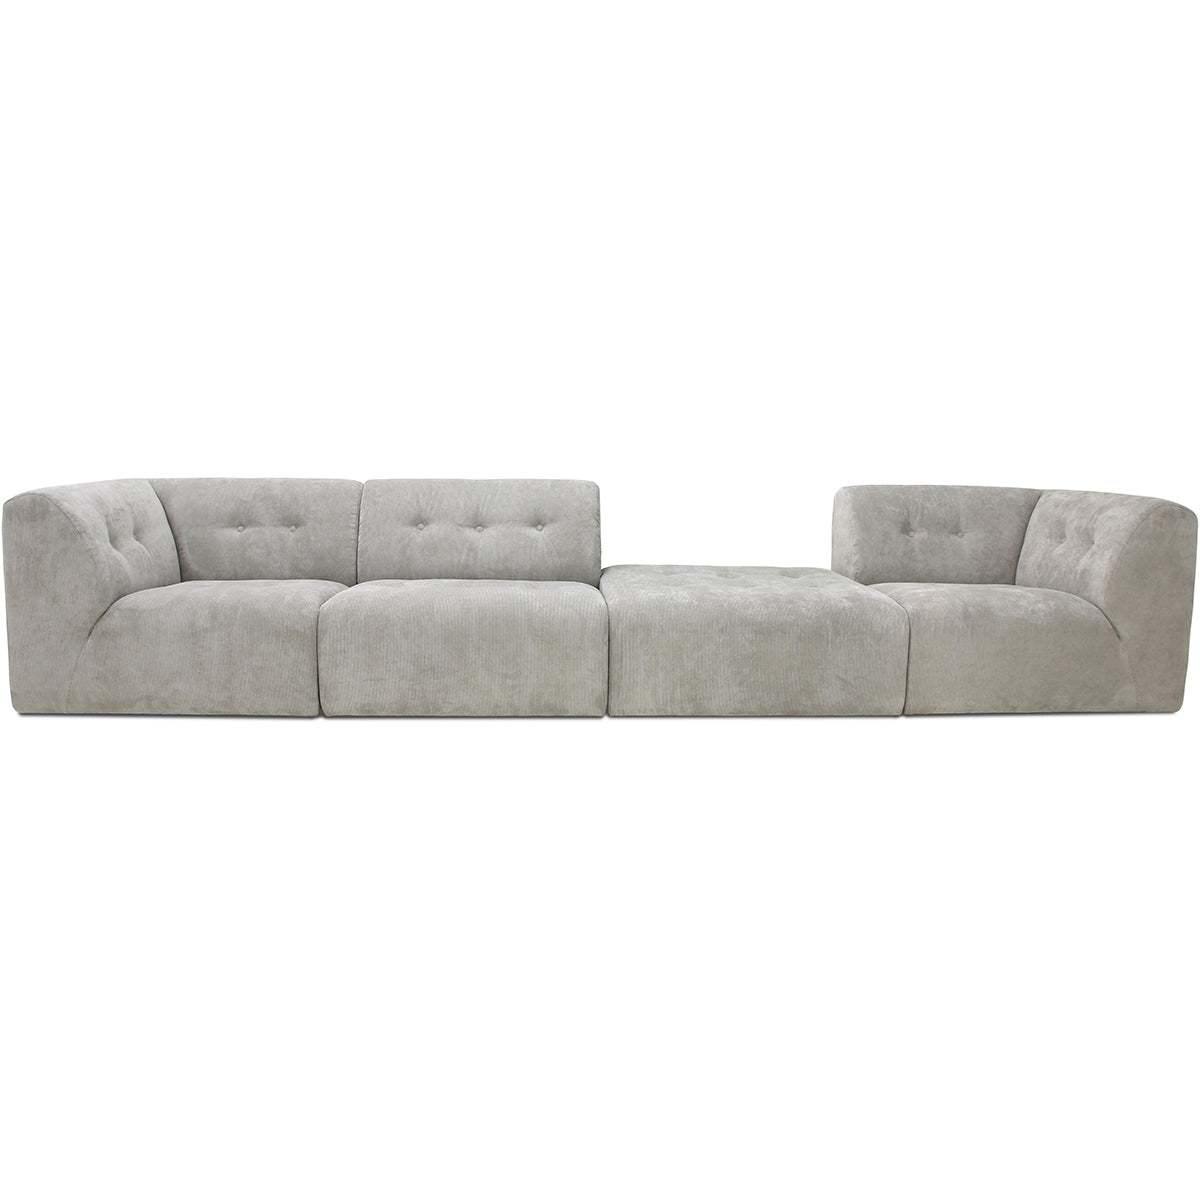 HK-Living vint couch: element right, corduroy rib, cream